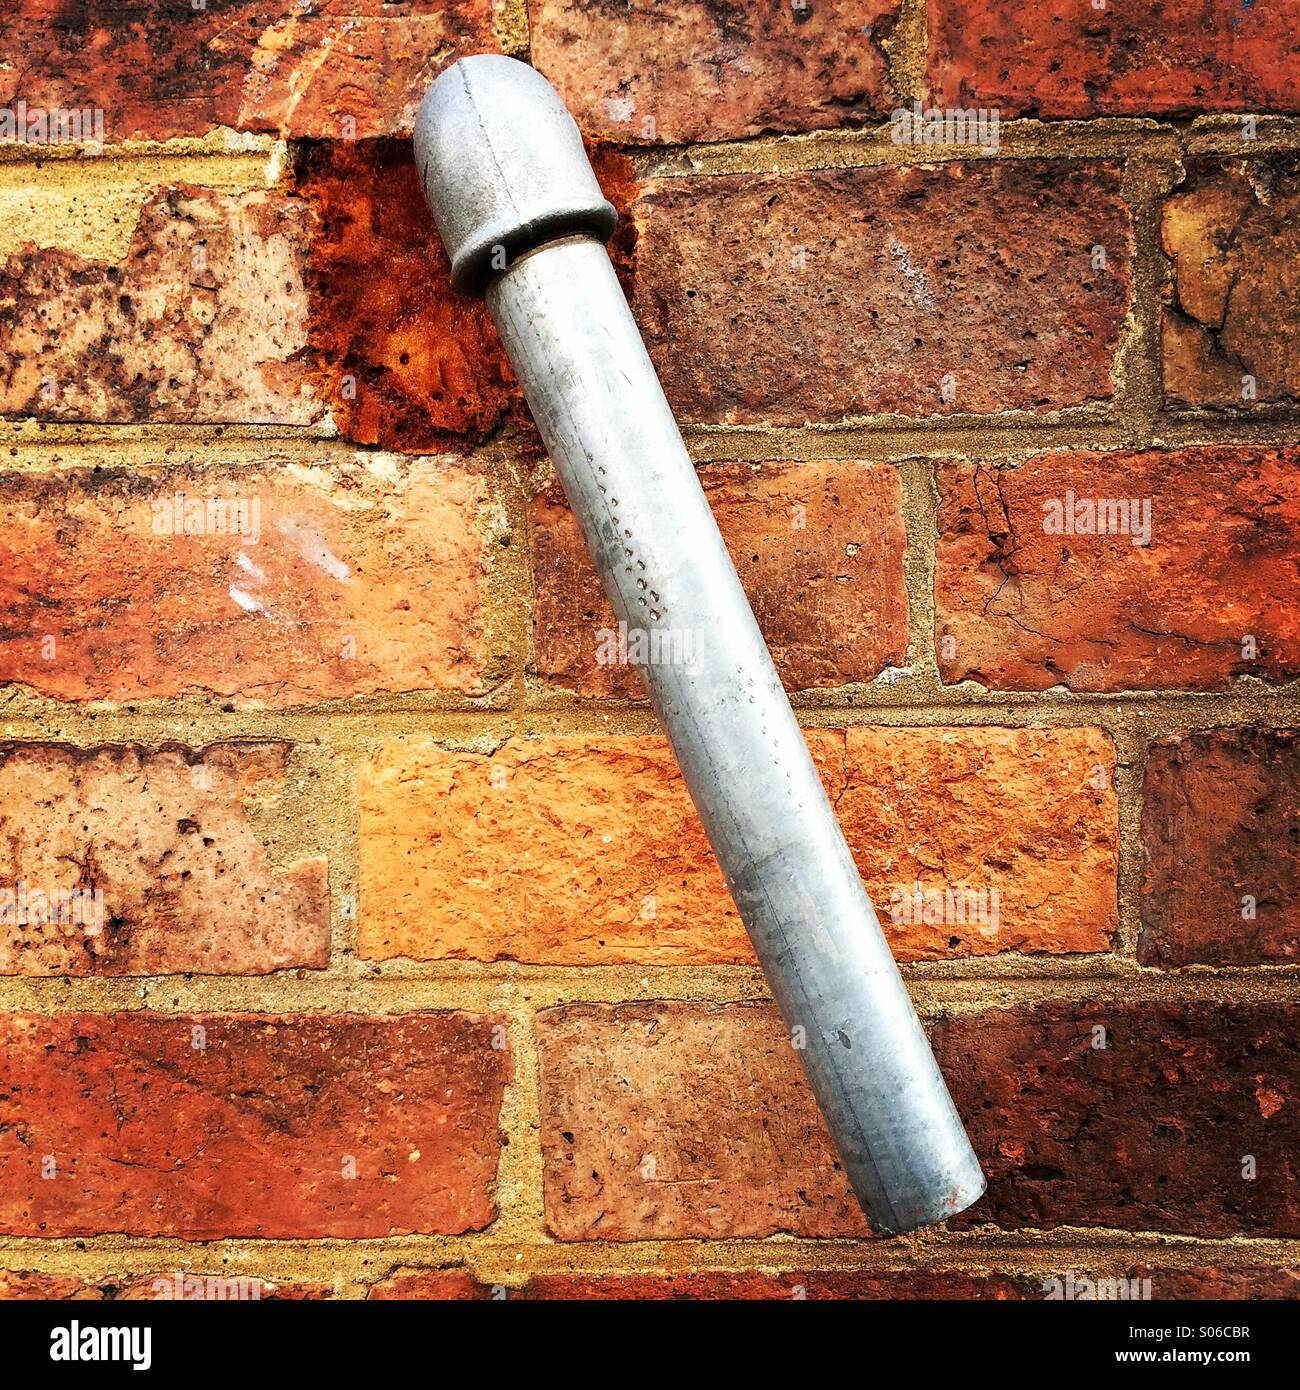 Overflow pipe protruding from a brick wall. - Stock Image